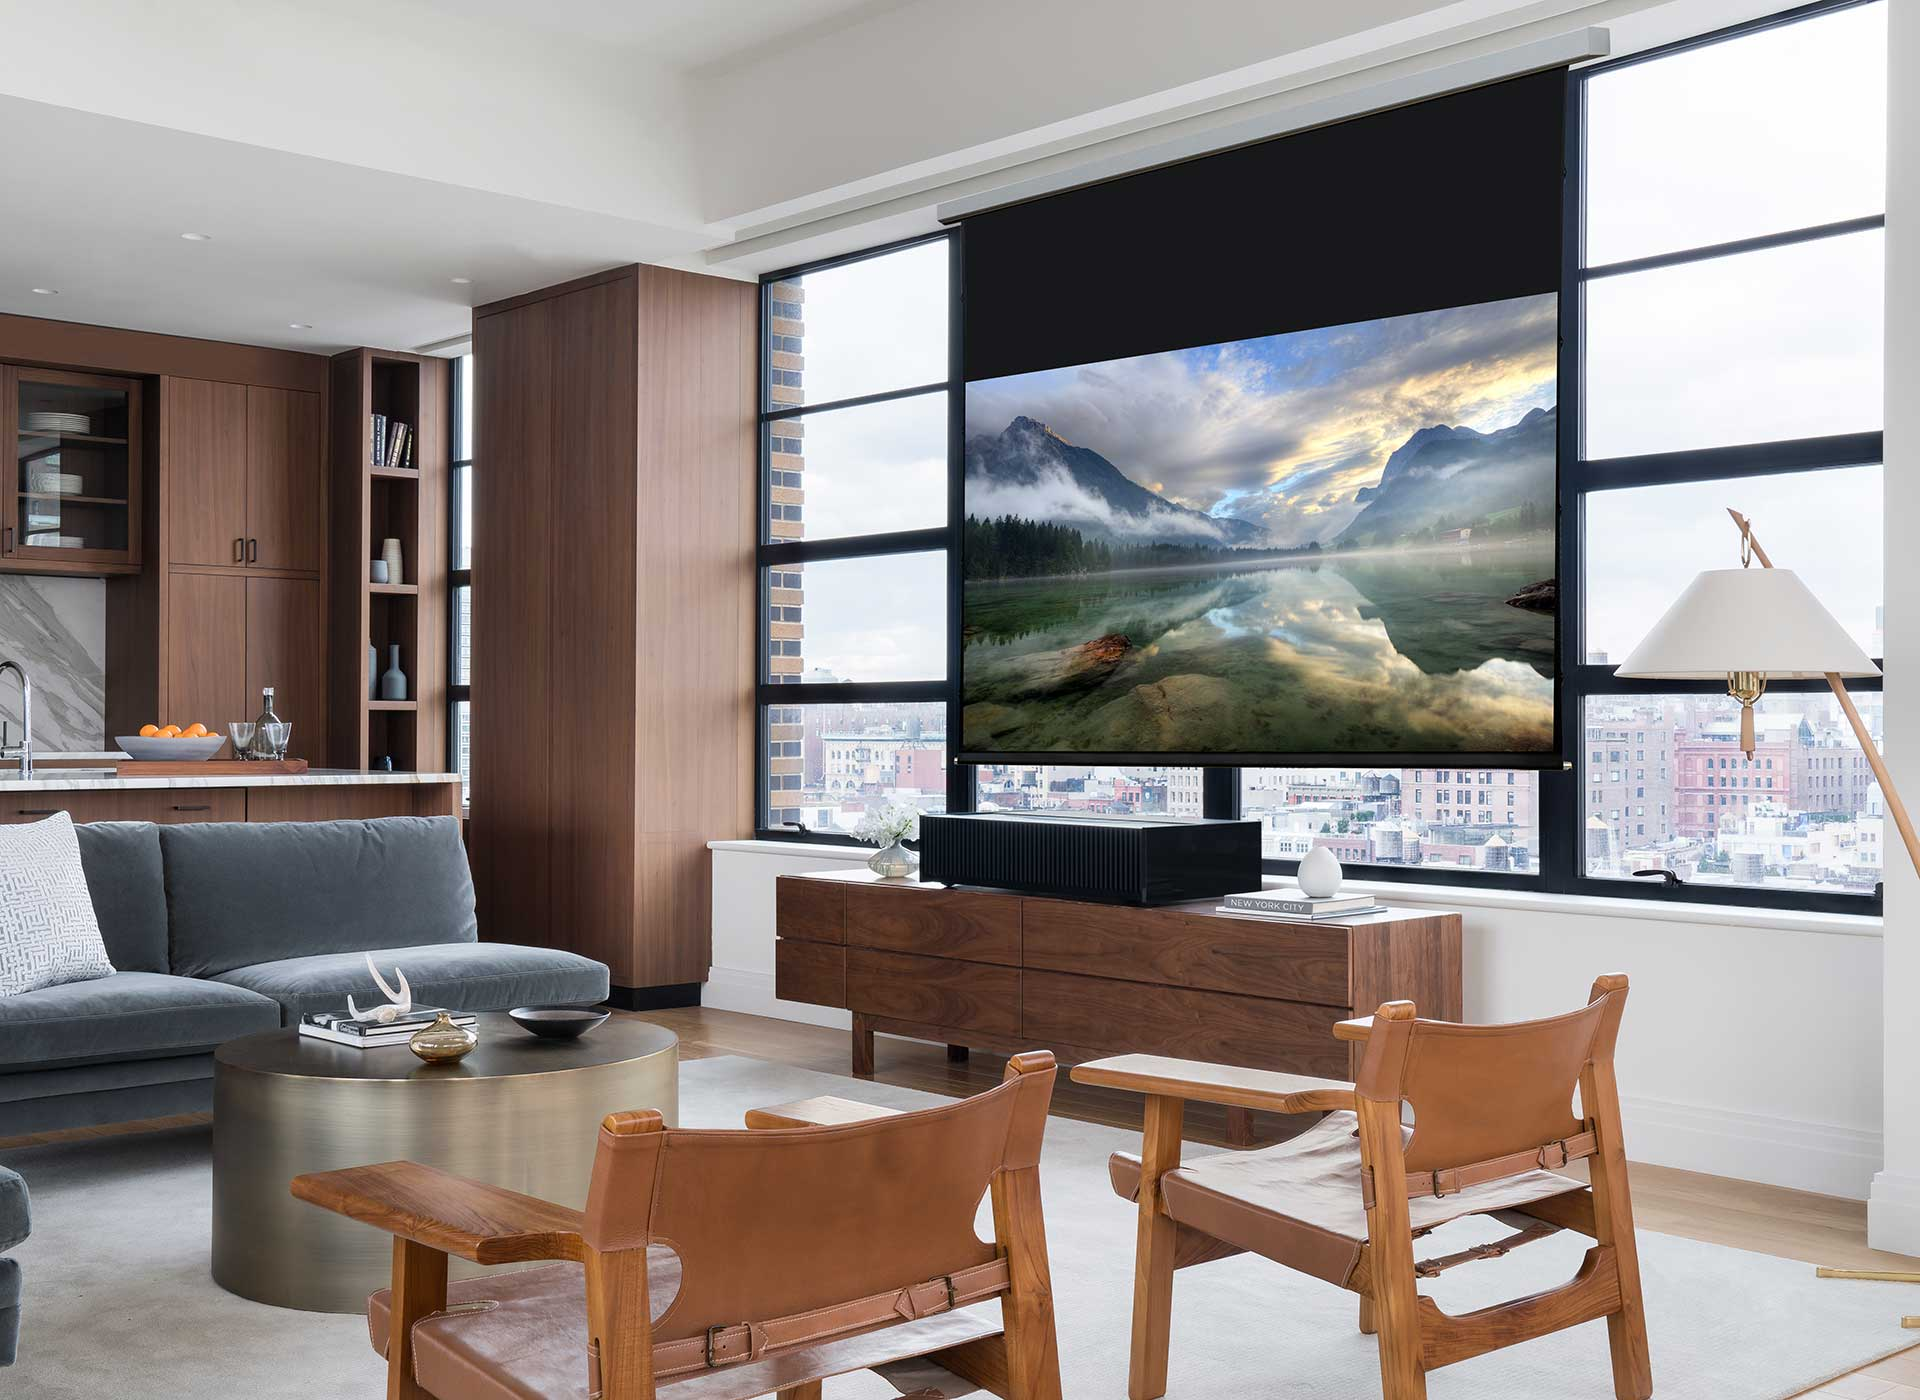 Residental Audio Video Systems by MIR Audio Video